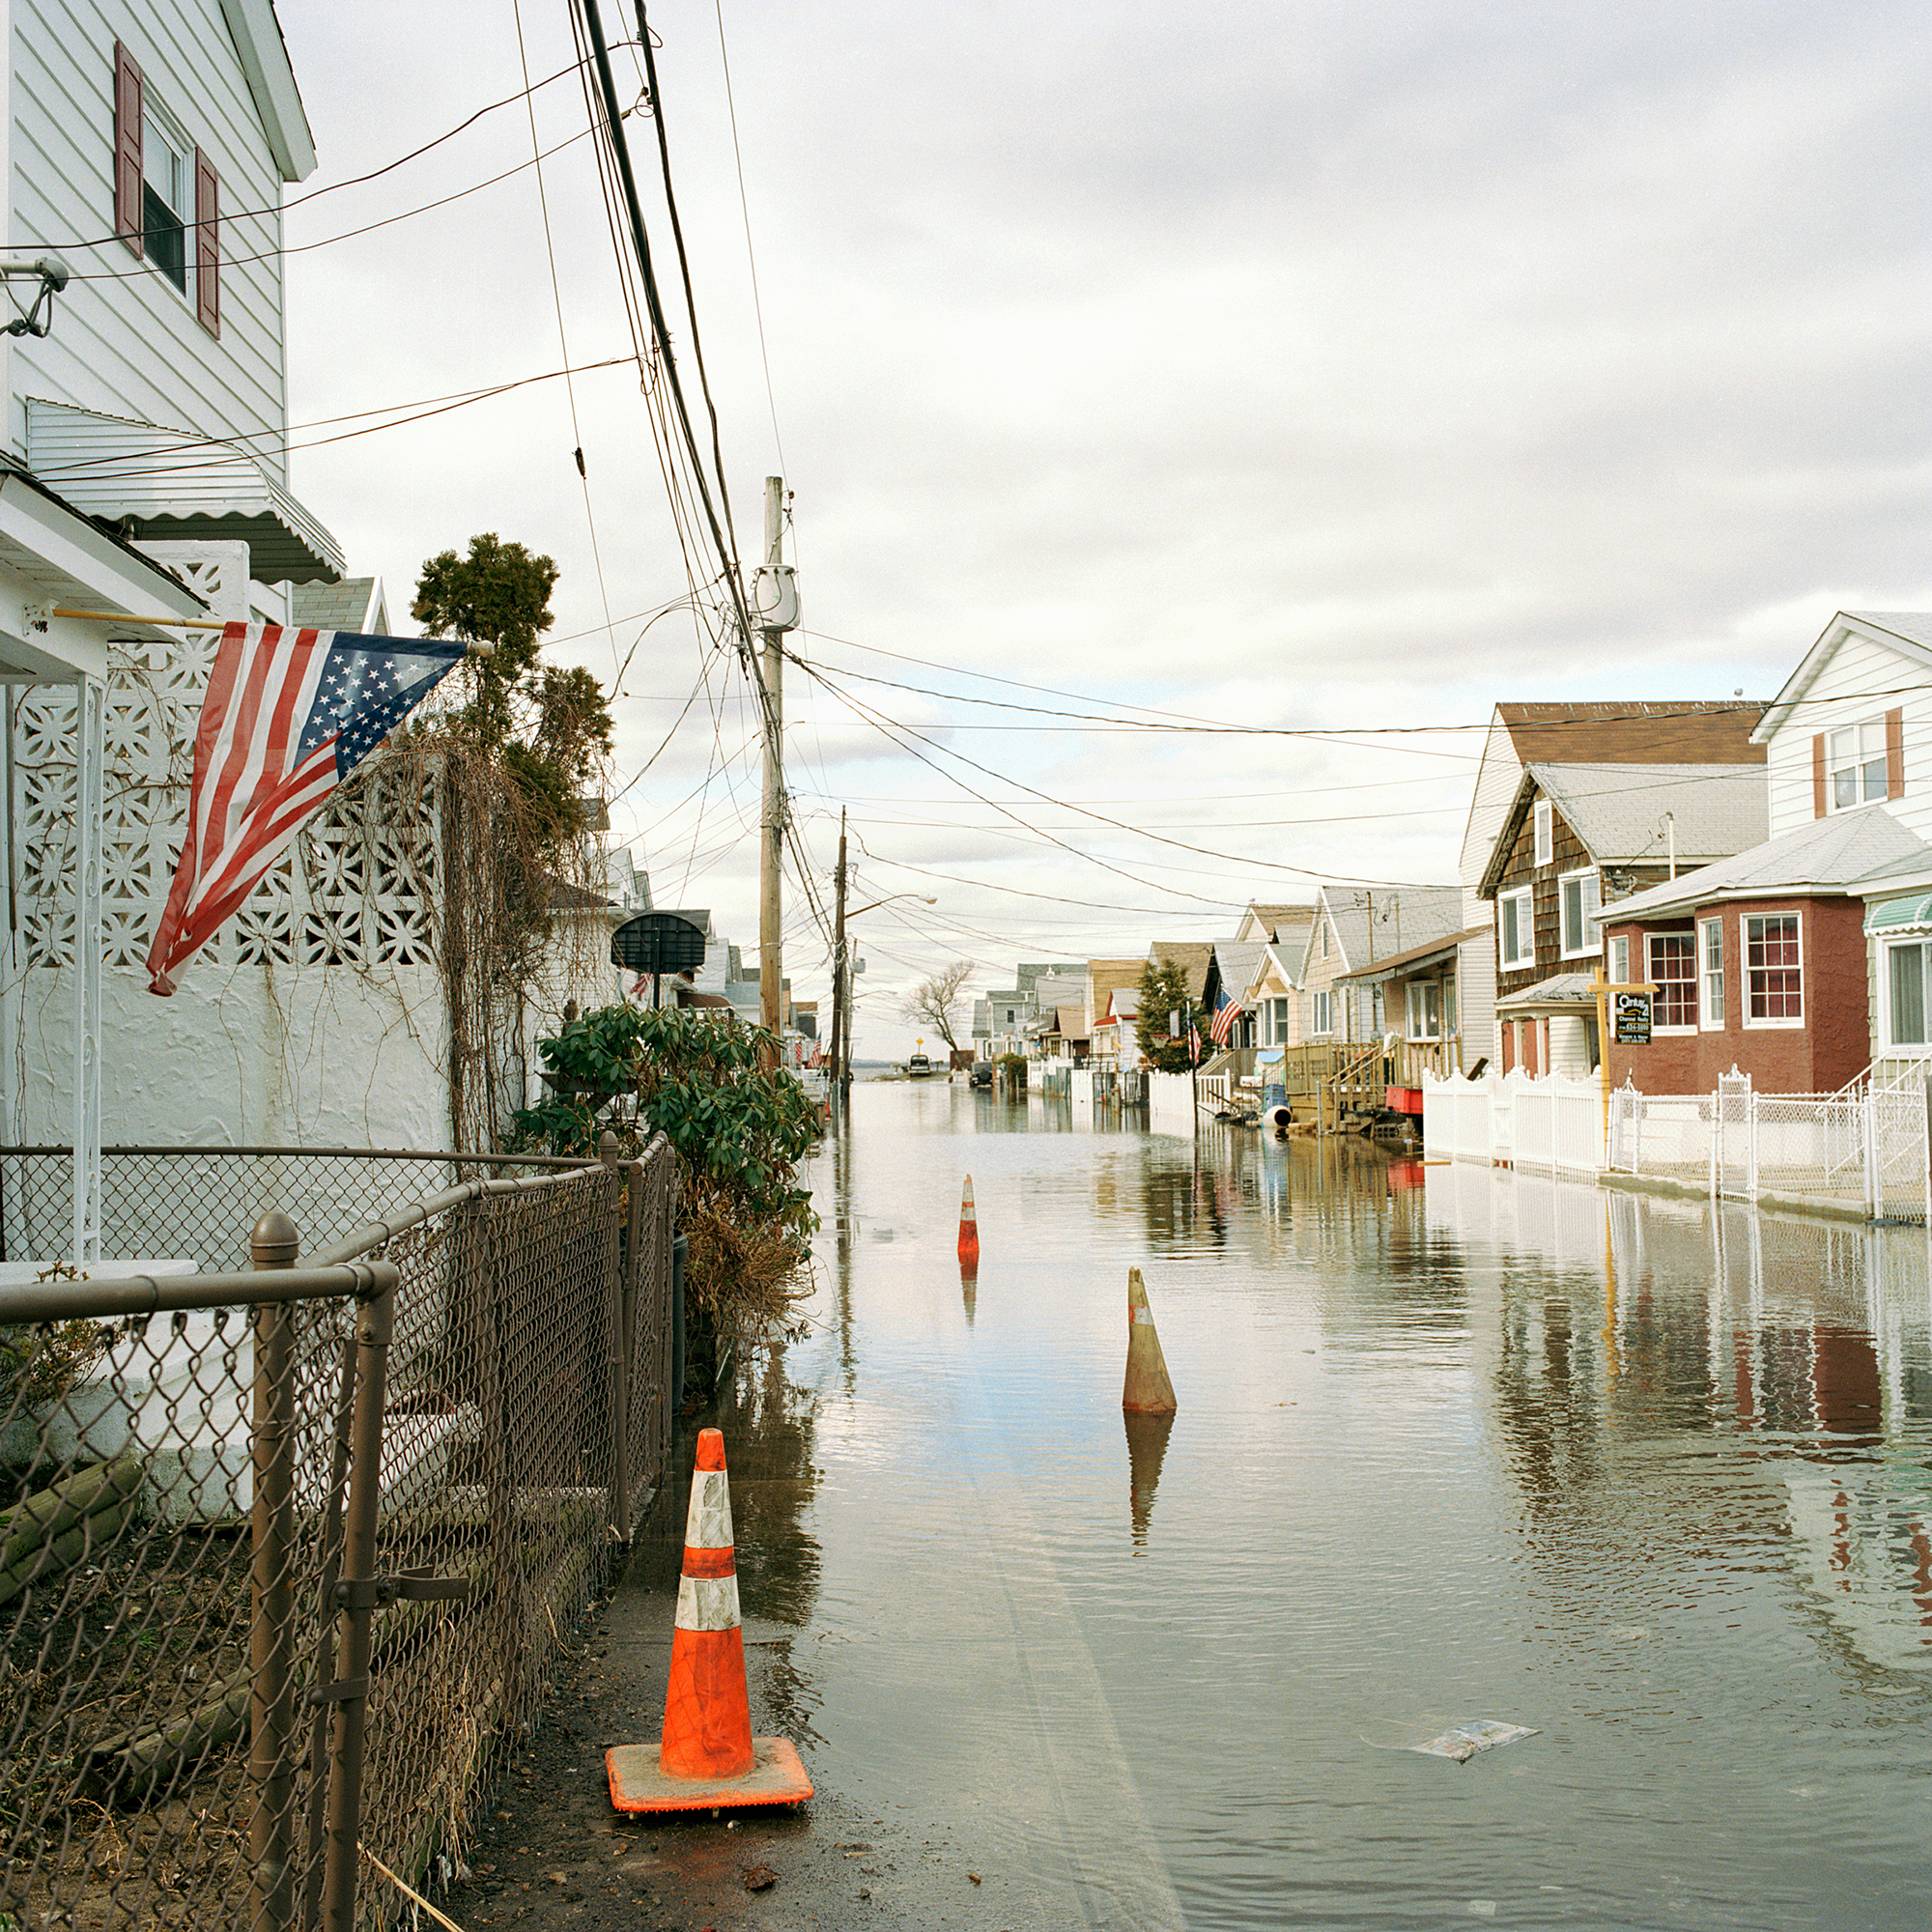 west 12th road, broad channel, ny